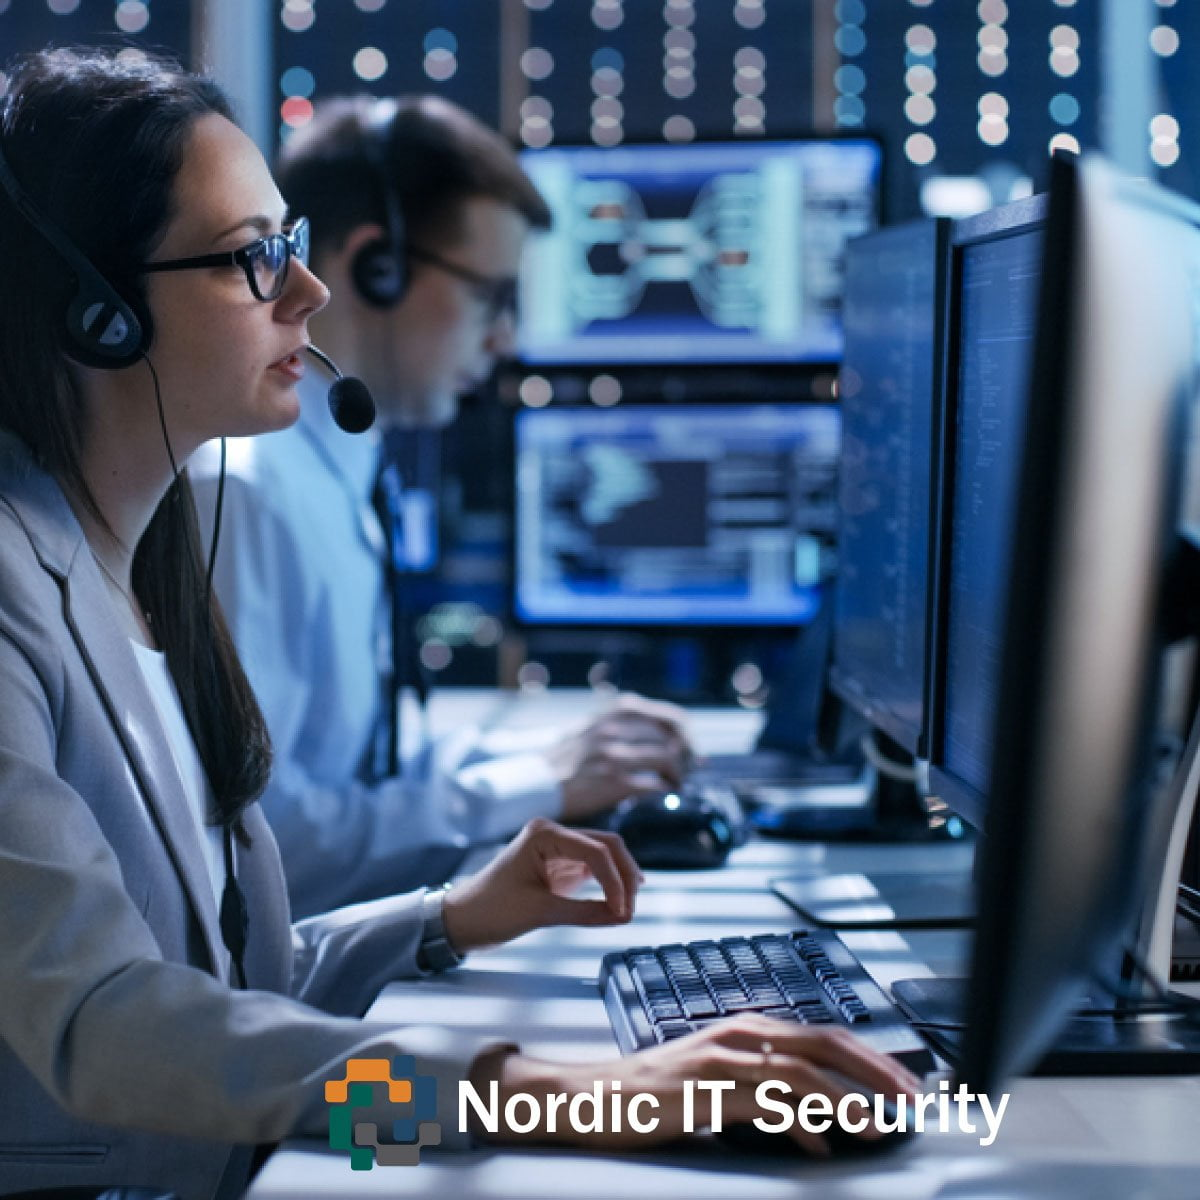 Yes, Even Cybercriminals Can Make Slipups and Enable Law Enforcement Crackdown - Blog post from Nordic IT Security Forum 2020